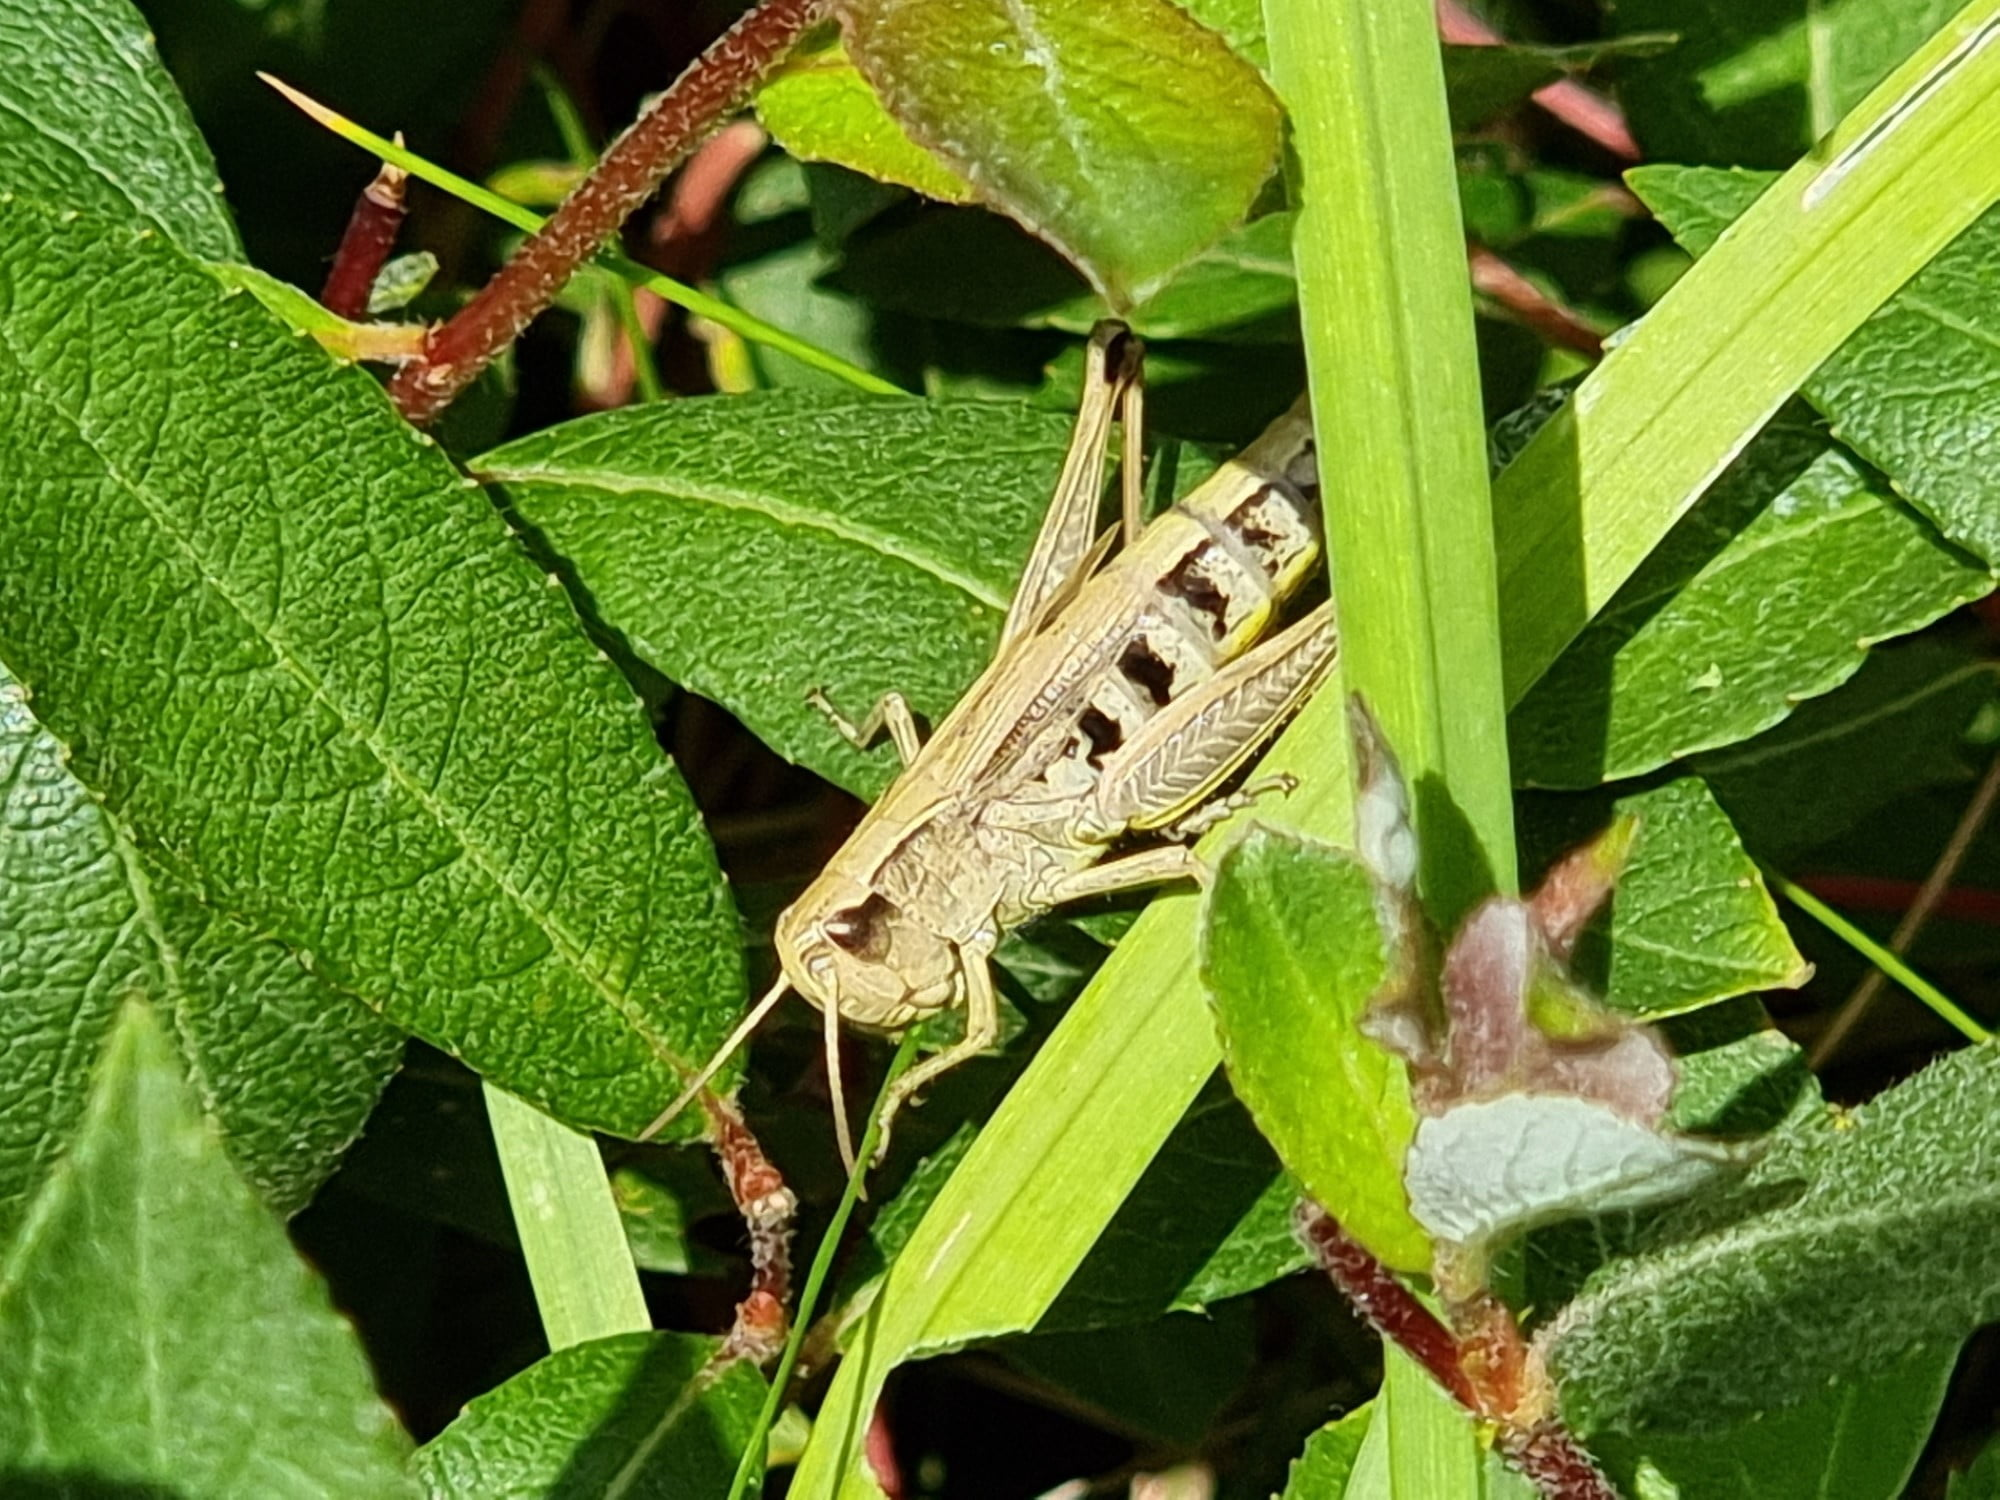 Photo of a grasshopper taken with the Galaxy S21 Ultra.